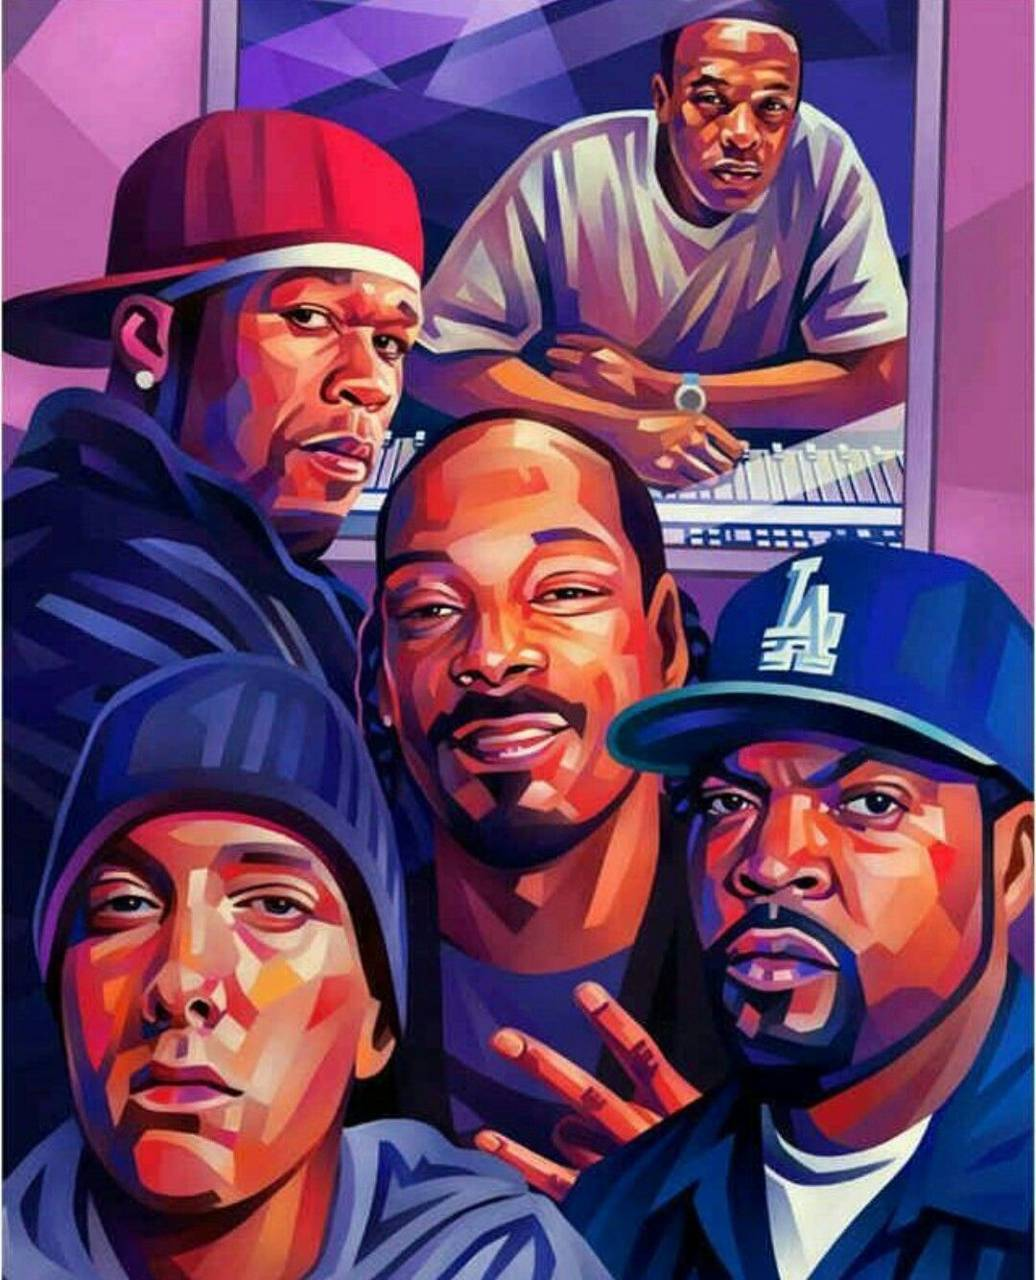 HipHop legends